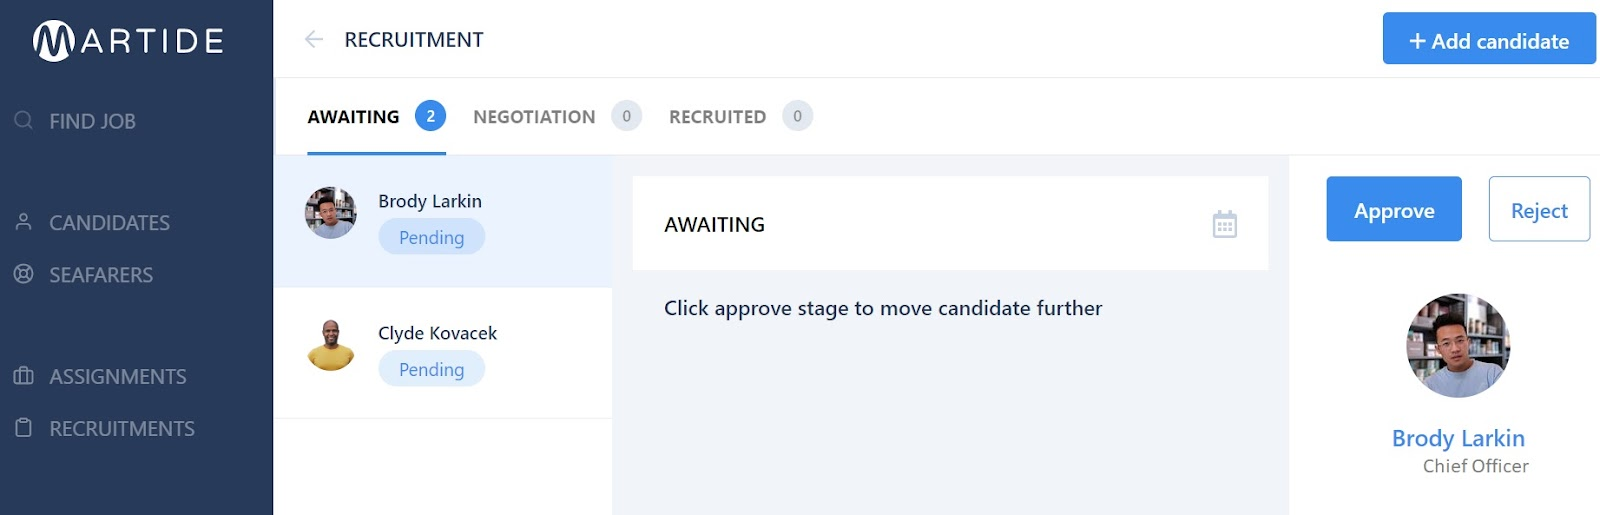 screenshot of the Martide website showing the candidate pipeline.